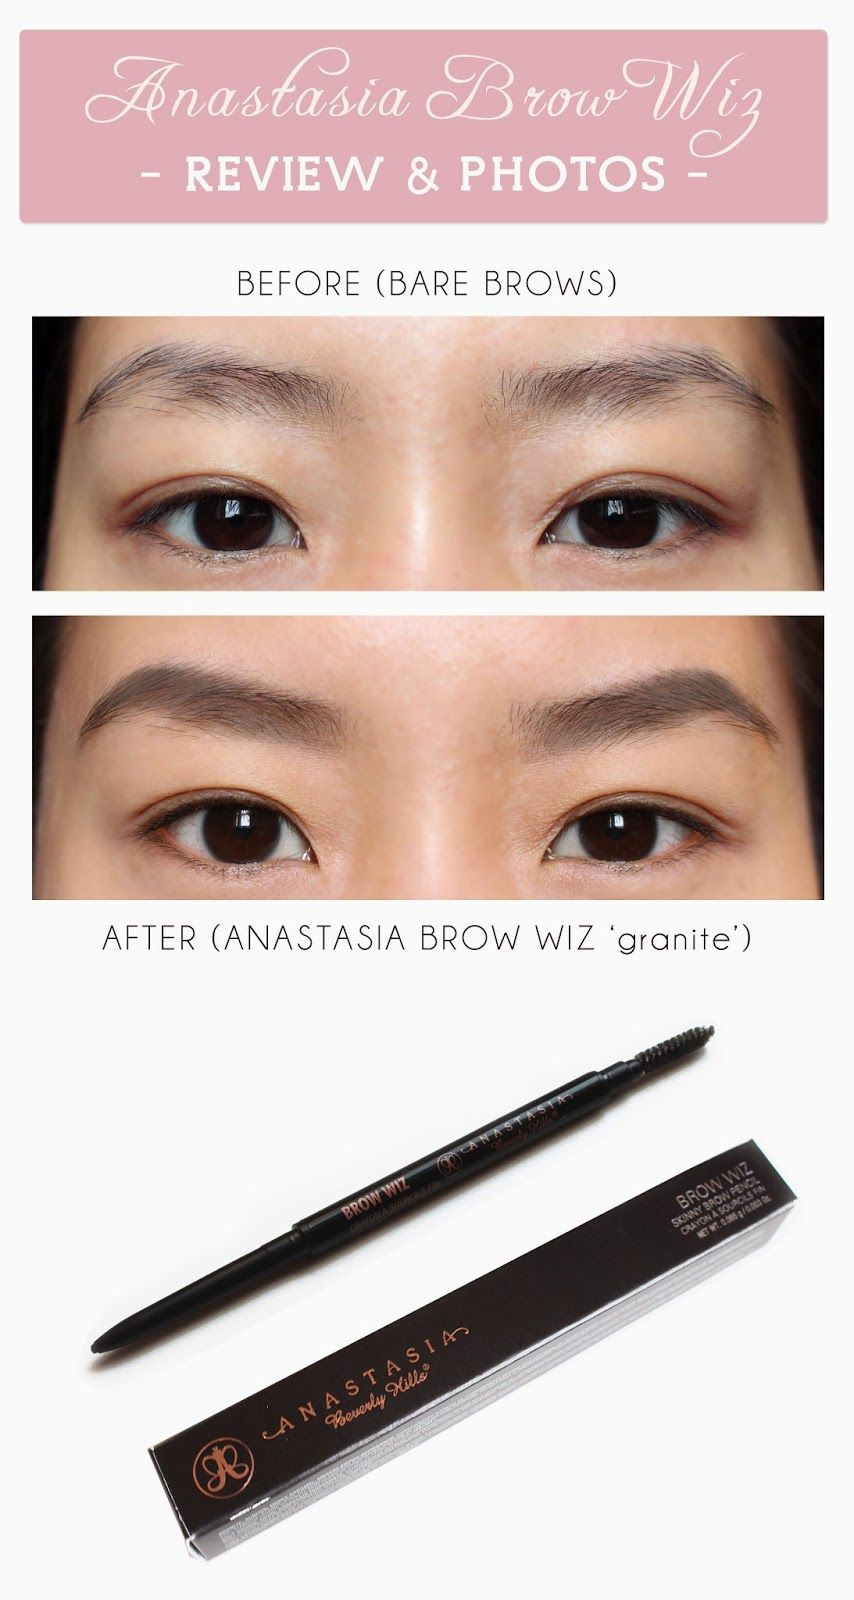 Anastasia Brow Wiz Review Photos Granite Is A Great Shade To